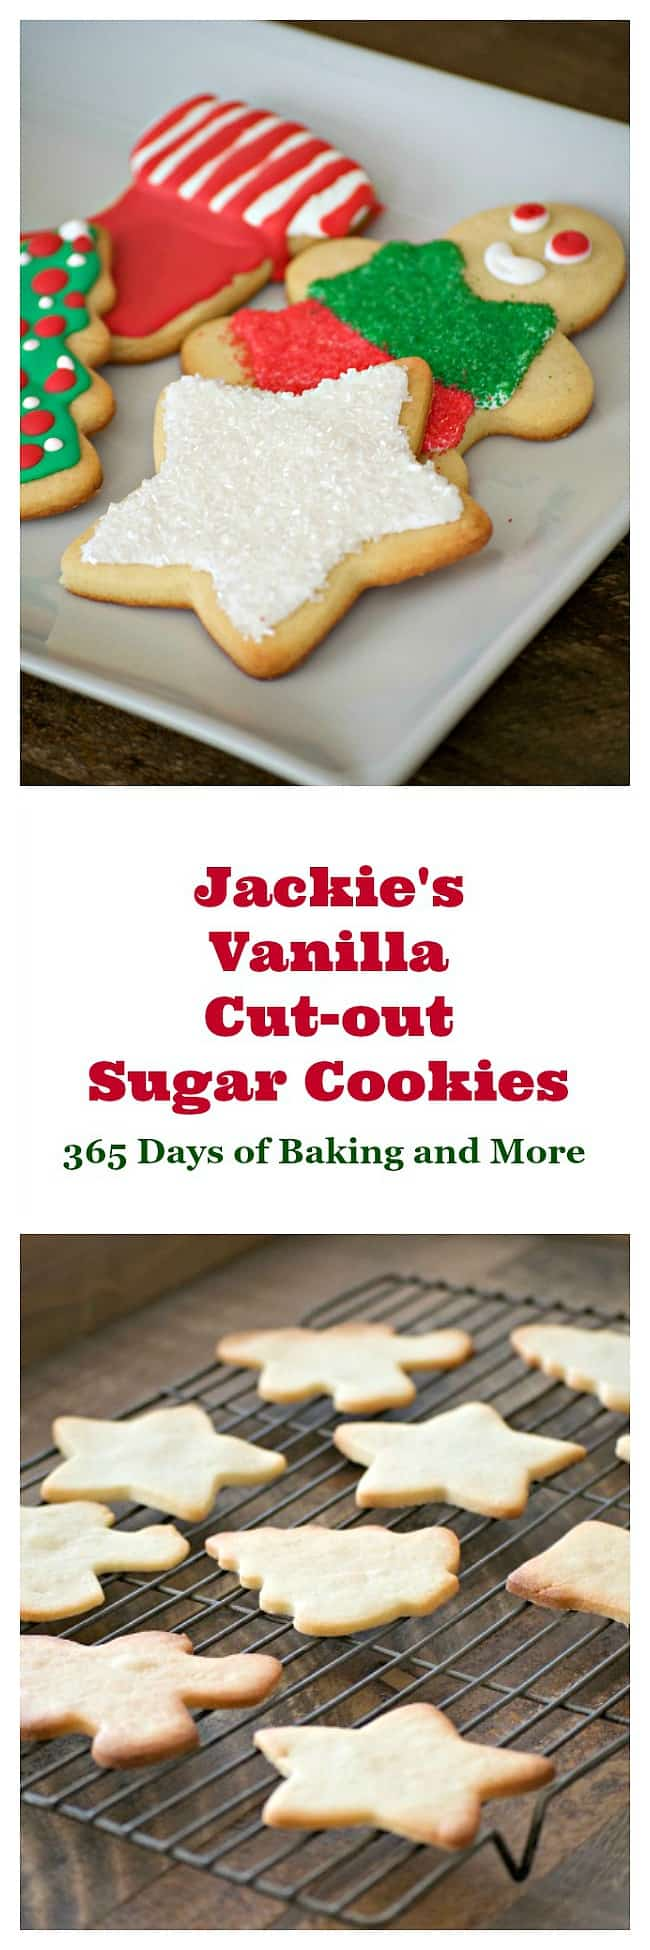 Jackie's Vanilla Cut-Out Cookies are tasty sugar cookies from the Cookies for Kids' Cancer Cookbook and I baked them in my De'Longhi Livenza Oven.